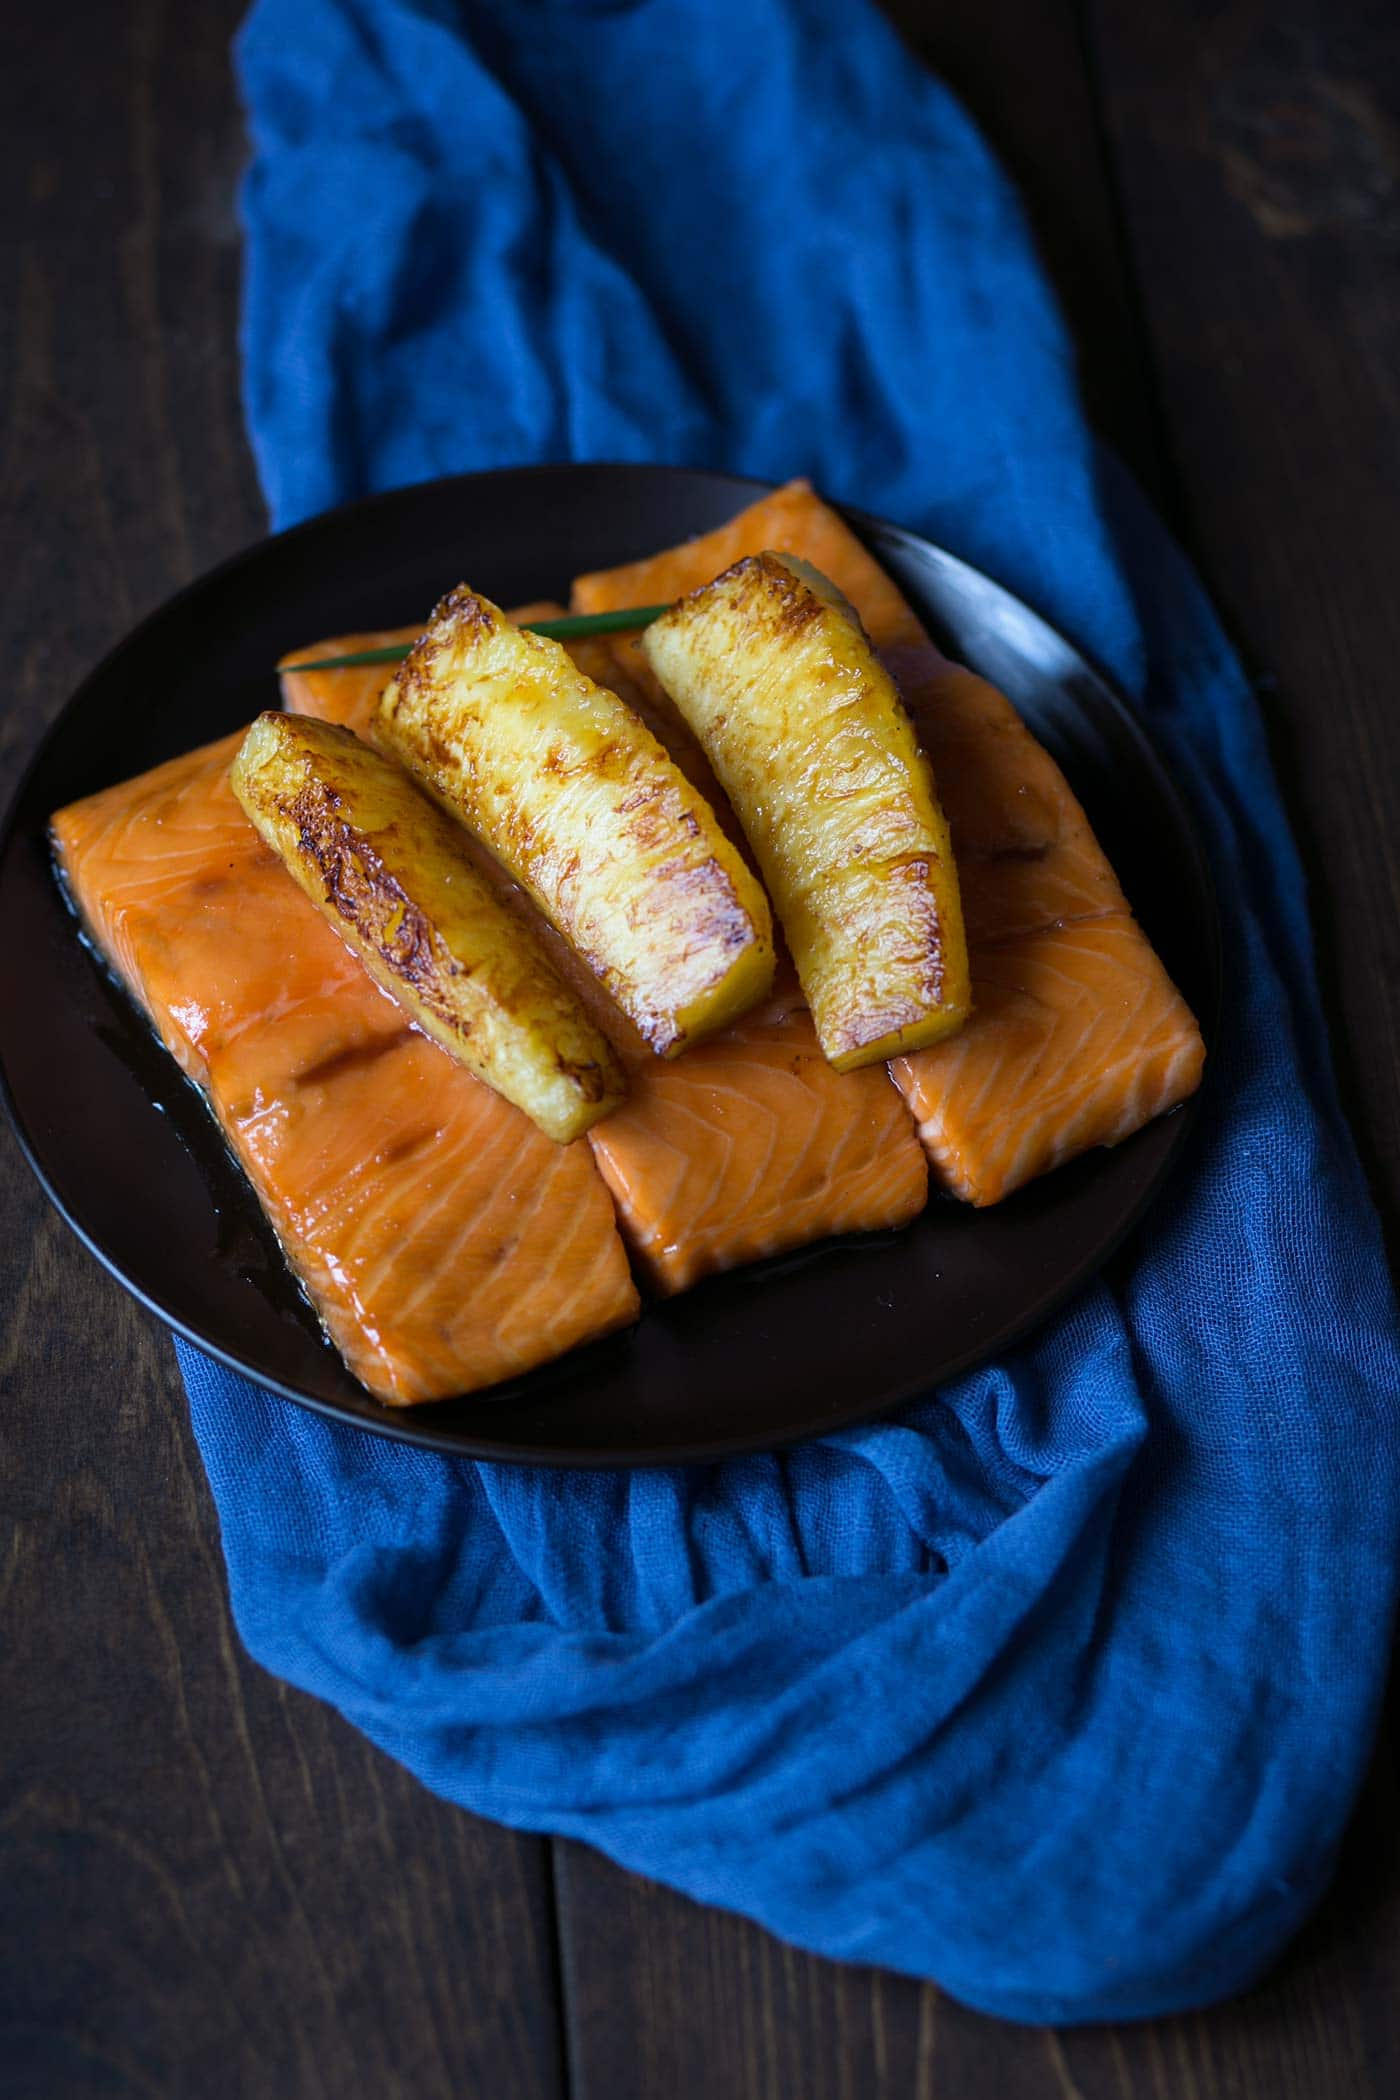 This baked Honey Soy Glazed Salmon with Caramelized Pineapples is a tasty, easy meal with only a few simple ingredients! Dinner is ready in under an hour (and that's mostly inactive). SavorySimple.net